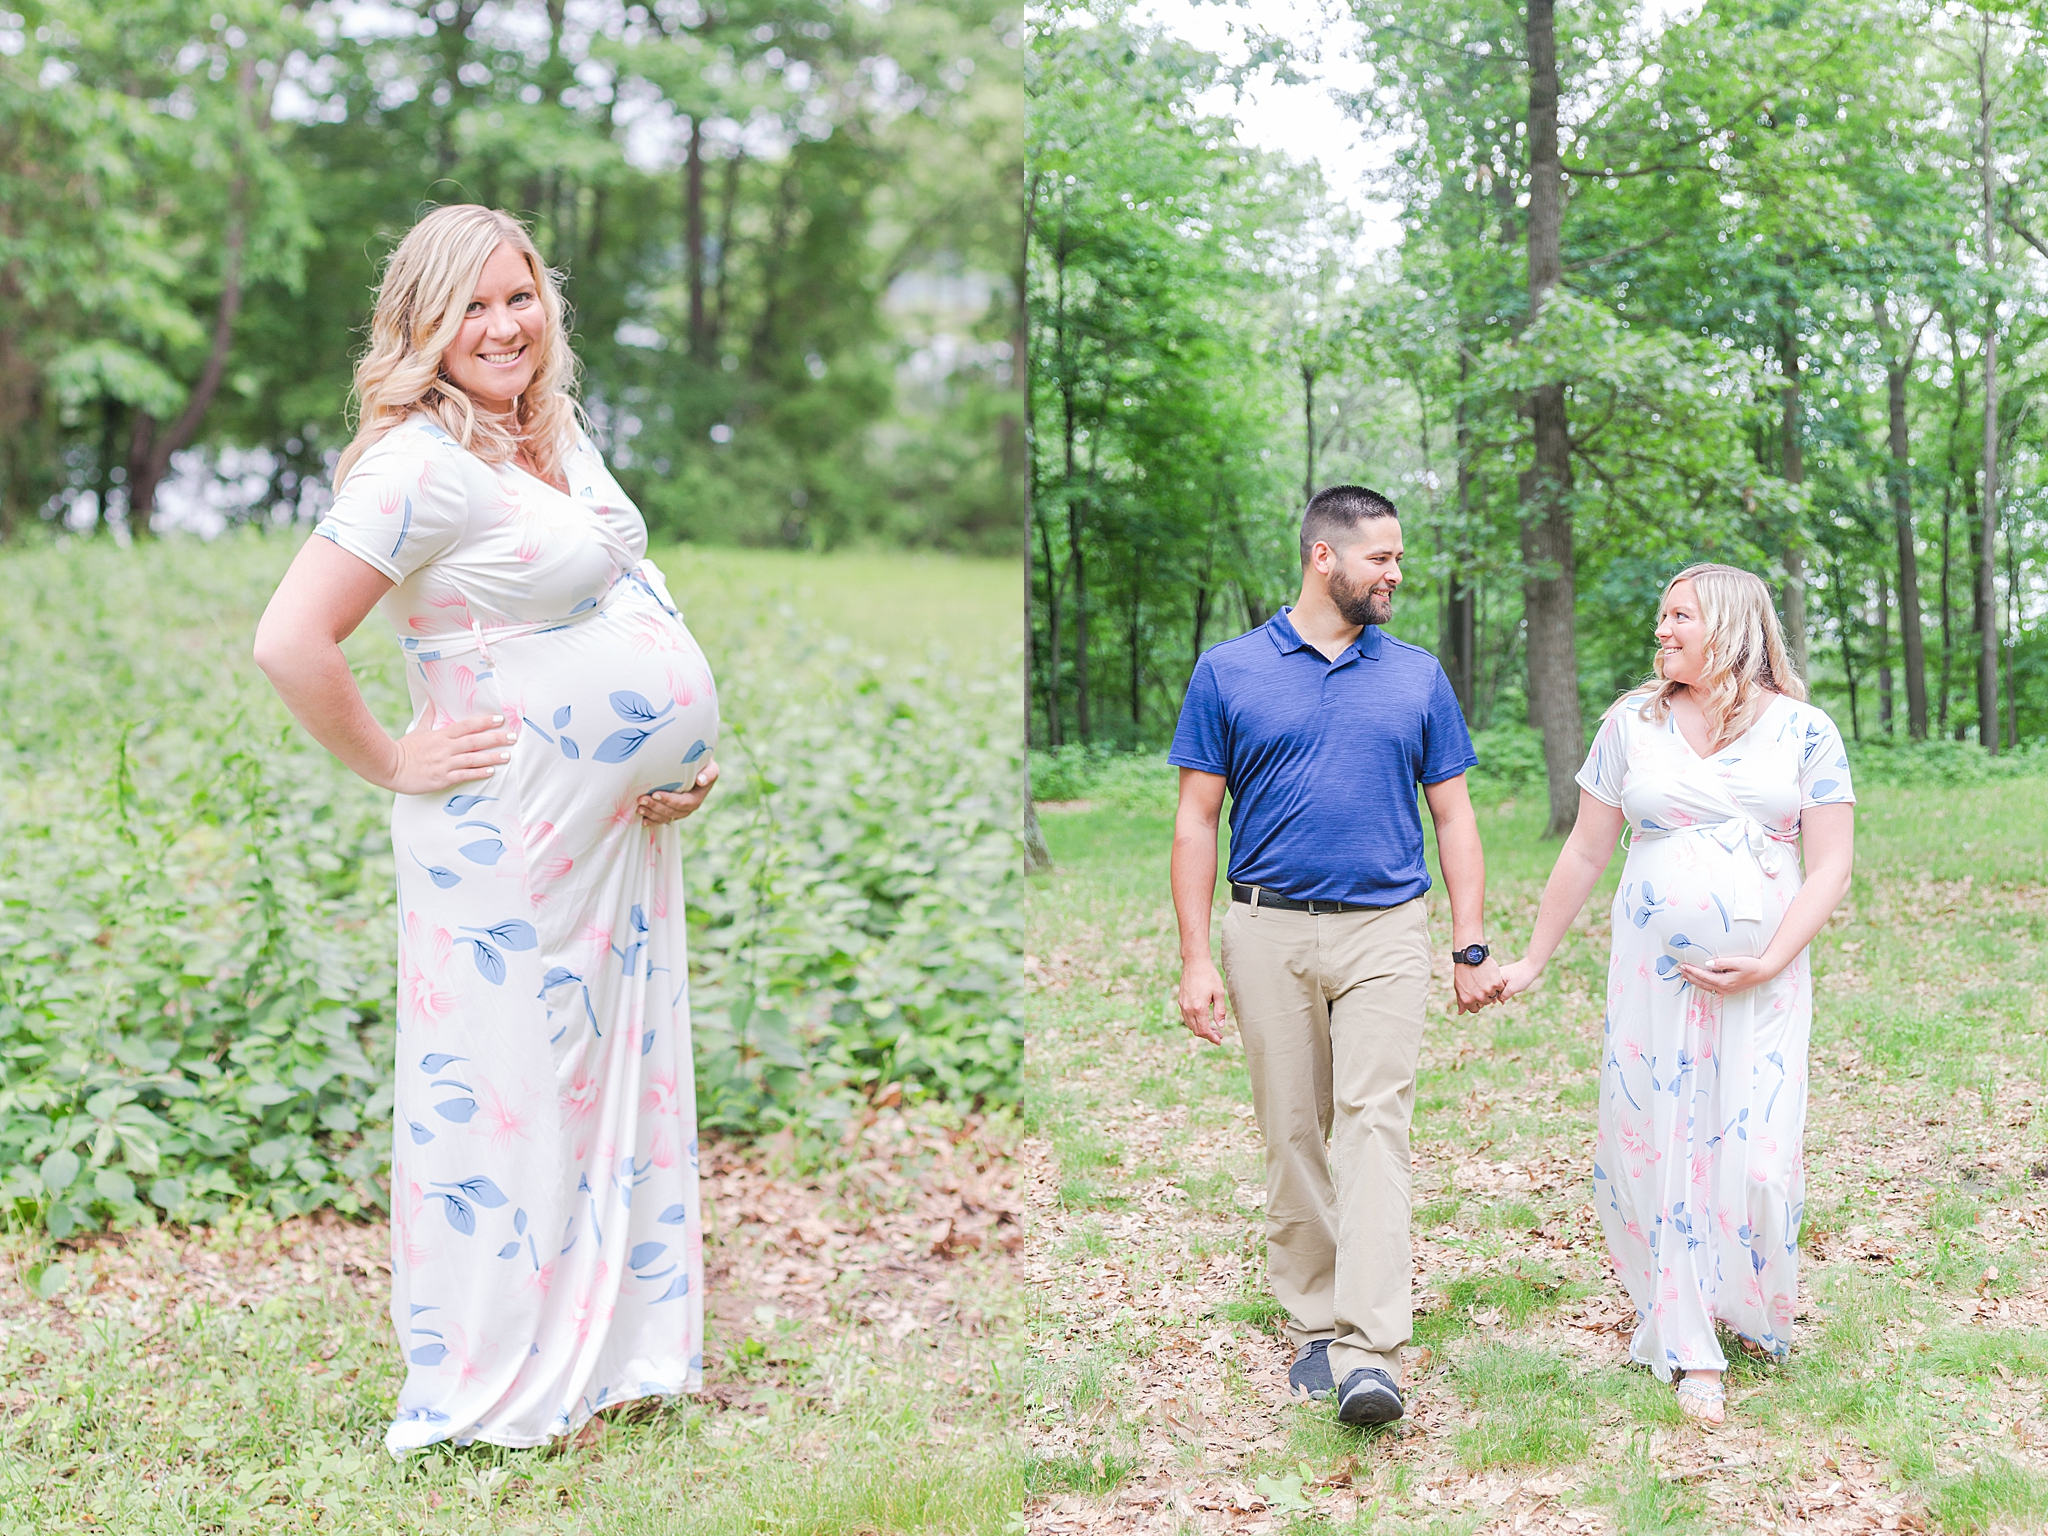 detroit-wedding-photographer-kensington-metro-park-maternity-keli-derek-by-courtney-carolyn-photography_0010.jpg